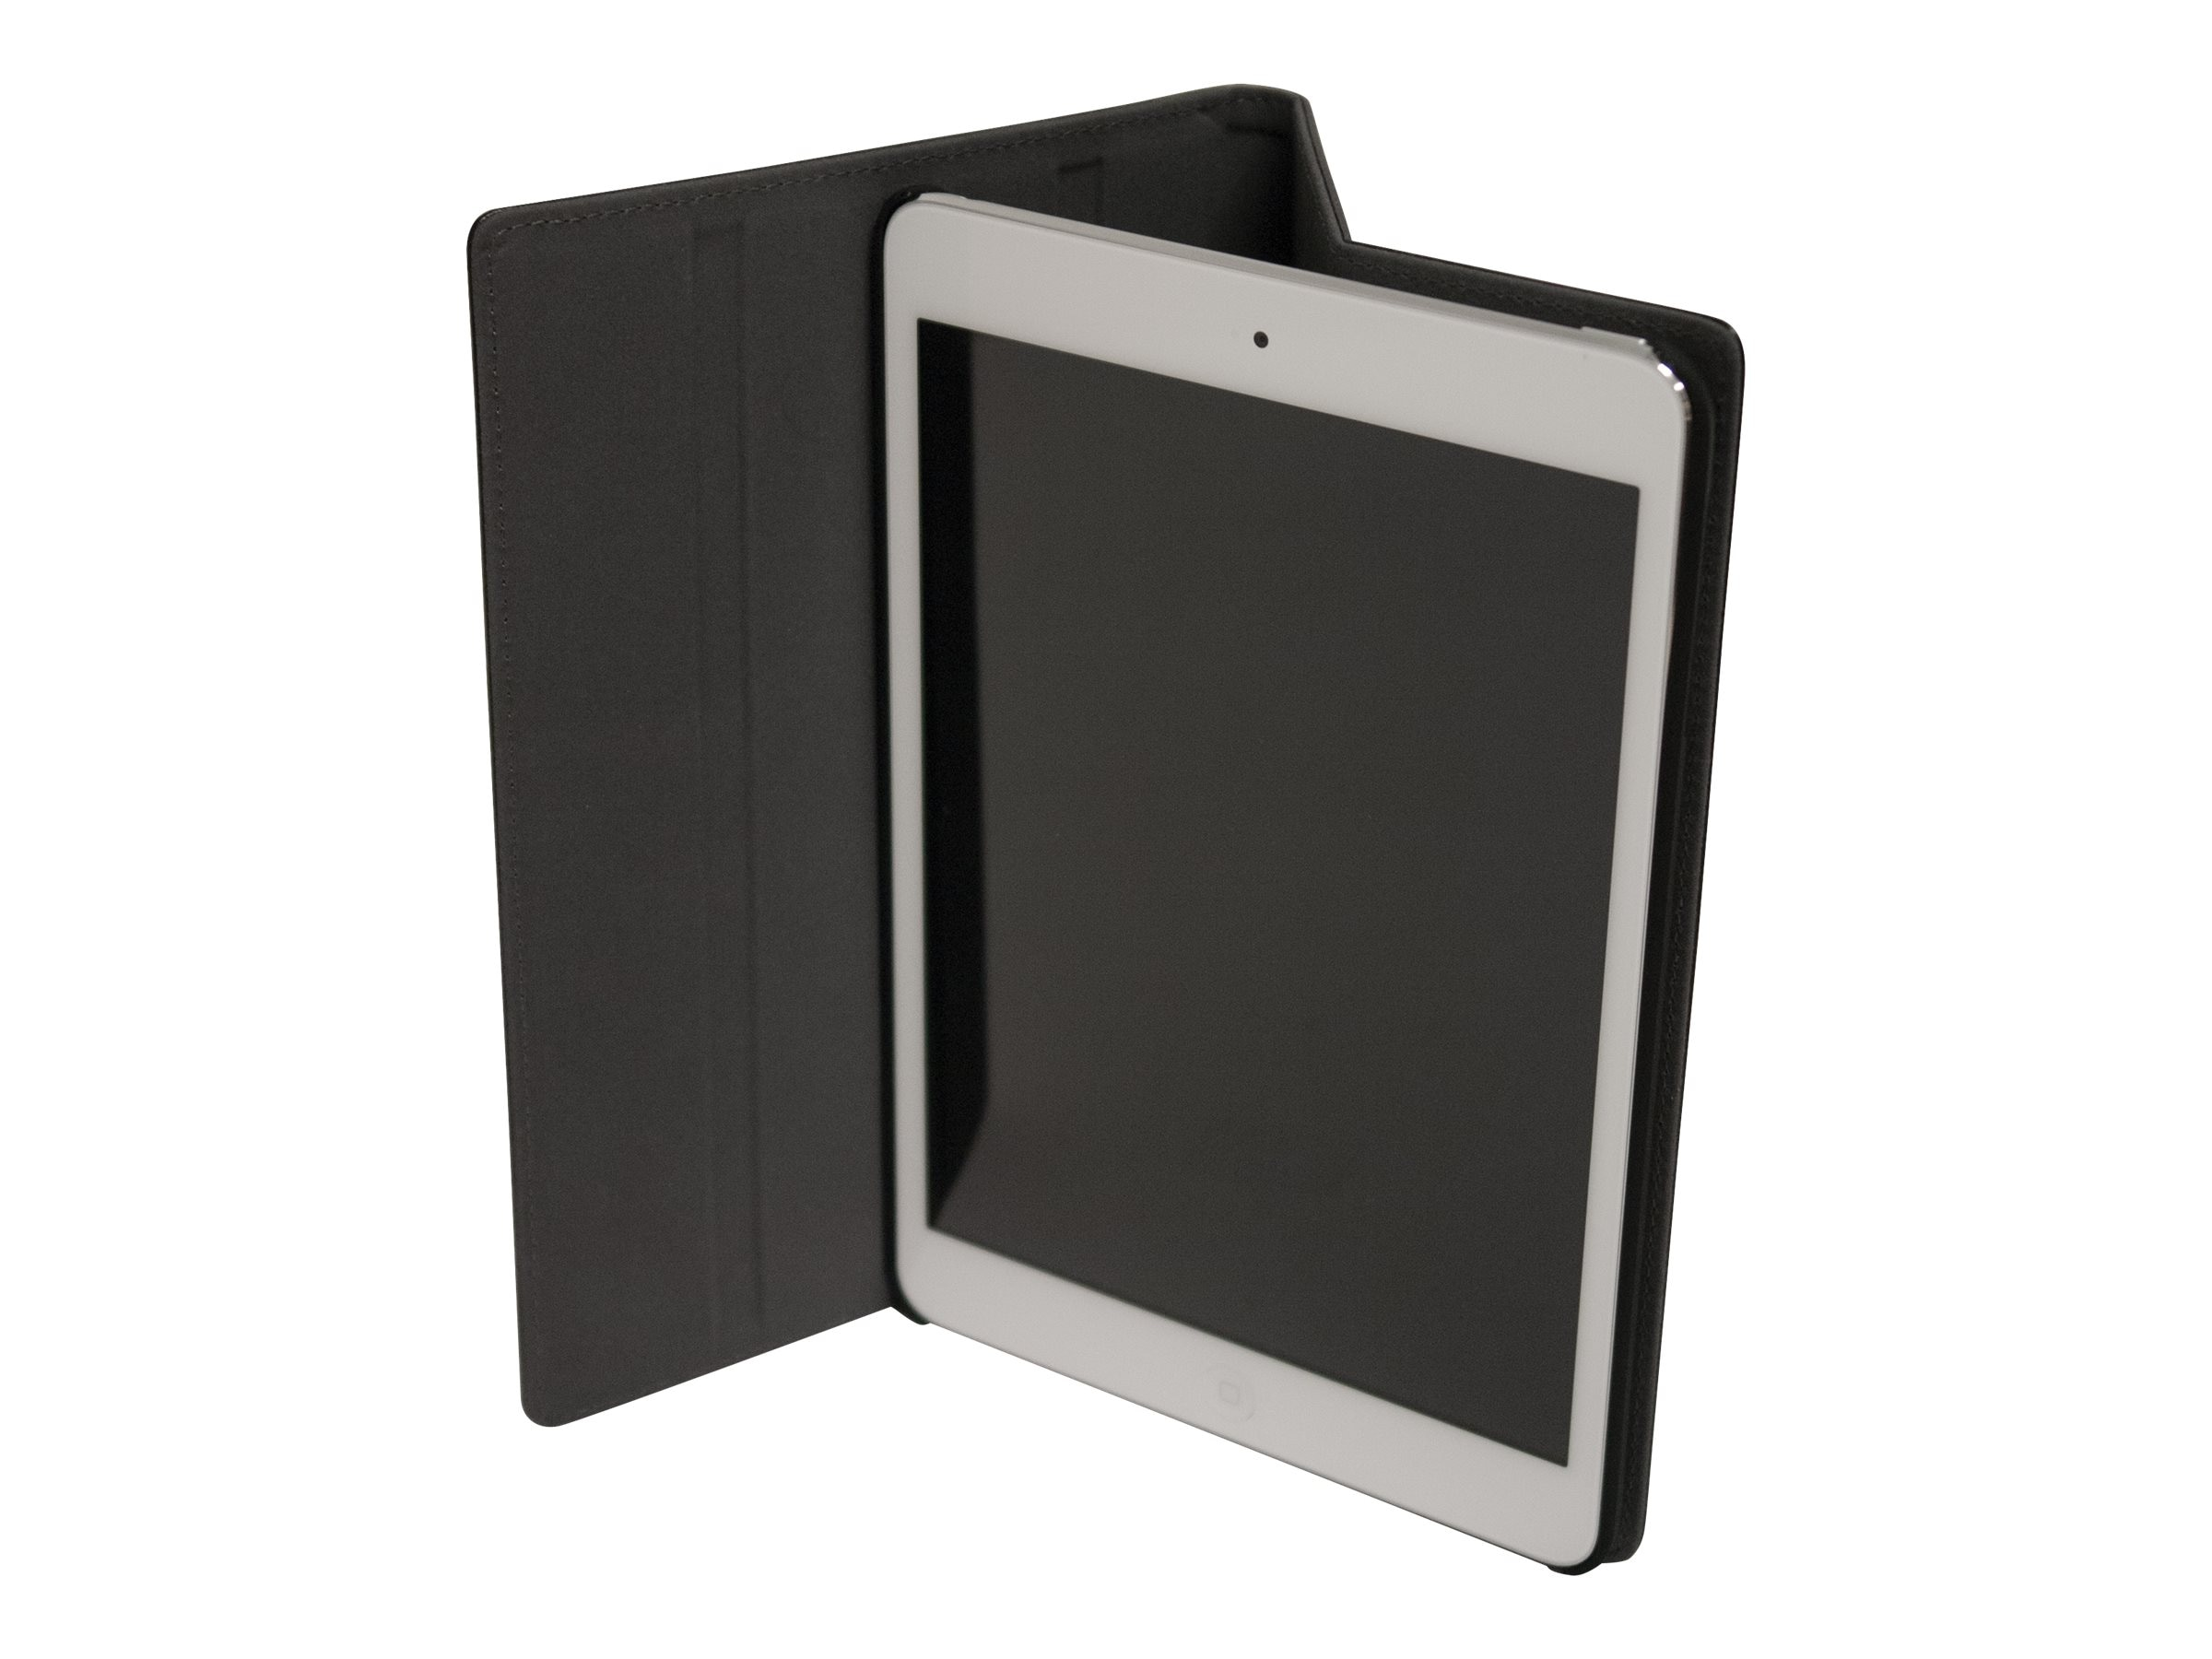 Mobile Edge Deluxe Slimfit for iPad Air, MEIAC2, 17450825, Carrying Cases - Tablets & eReaders